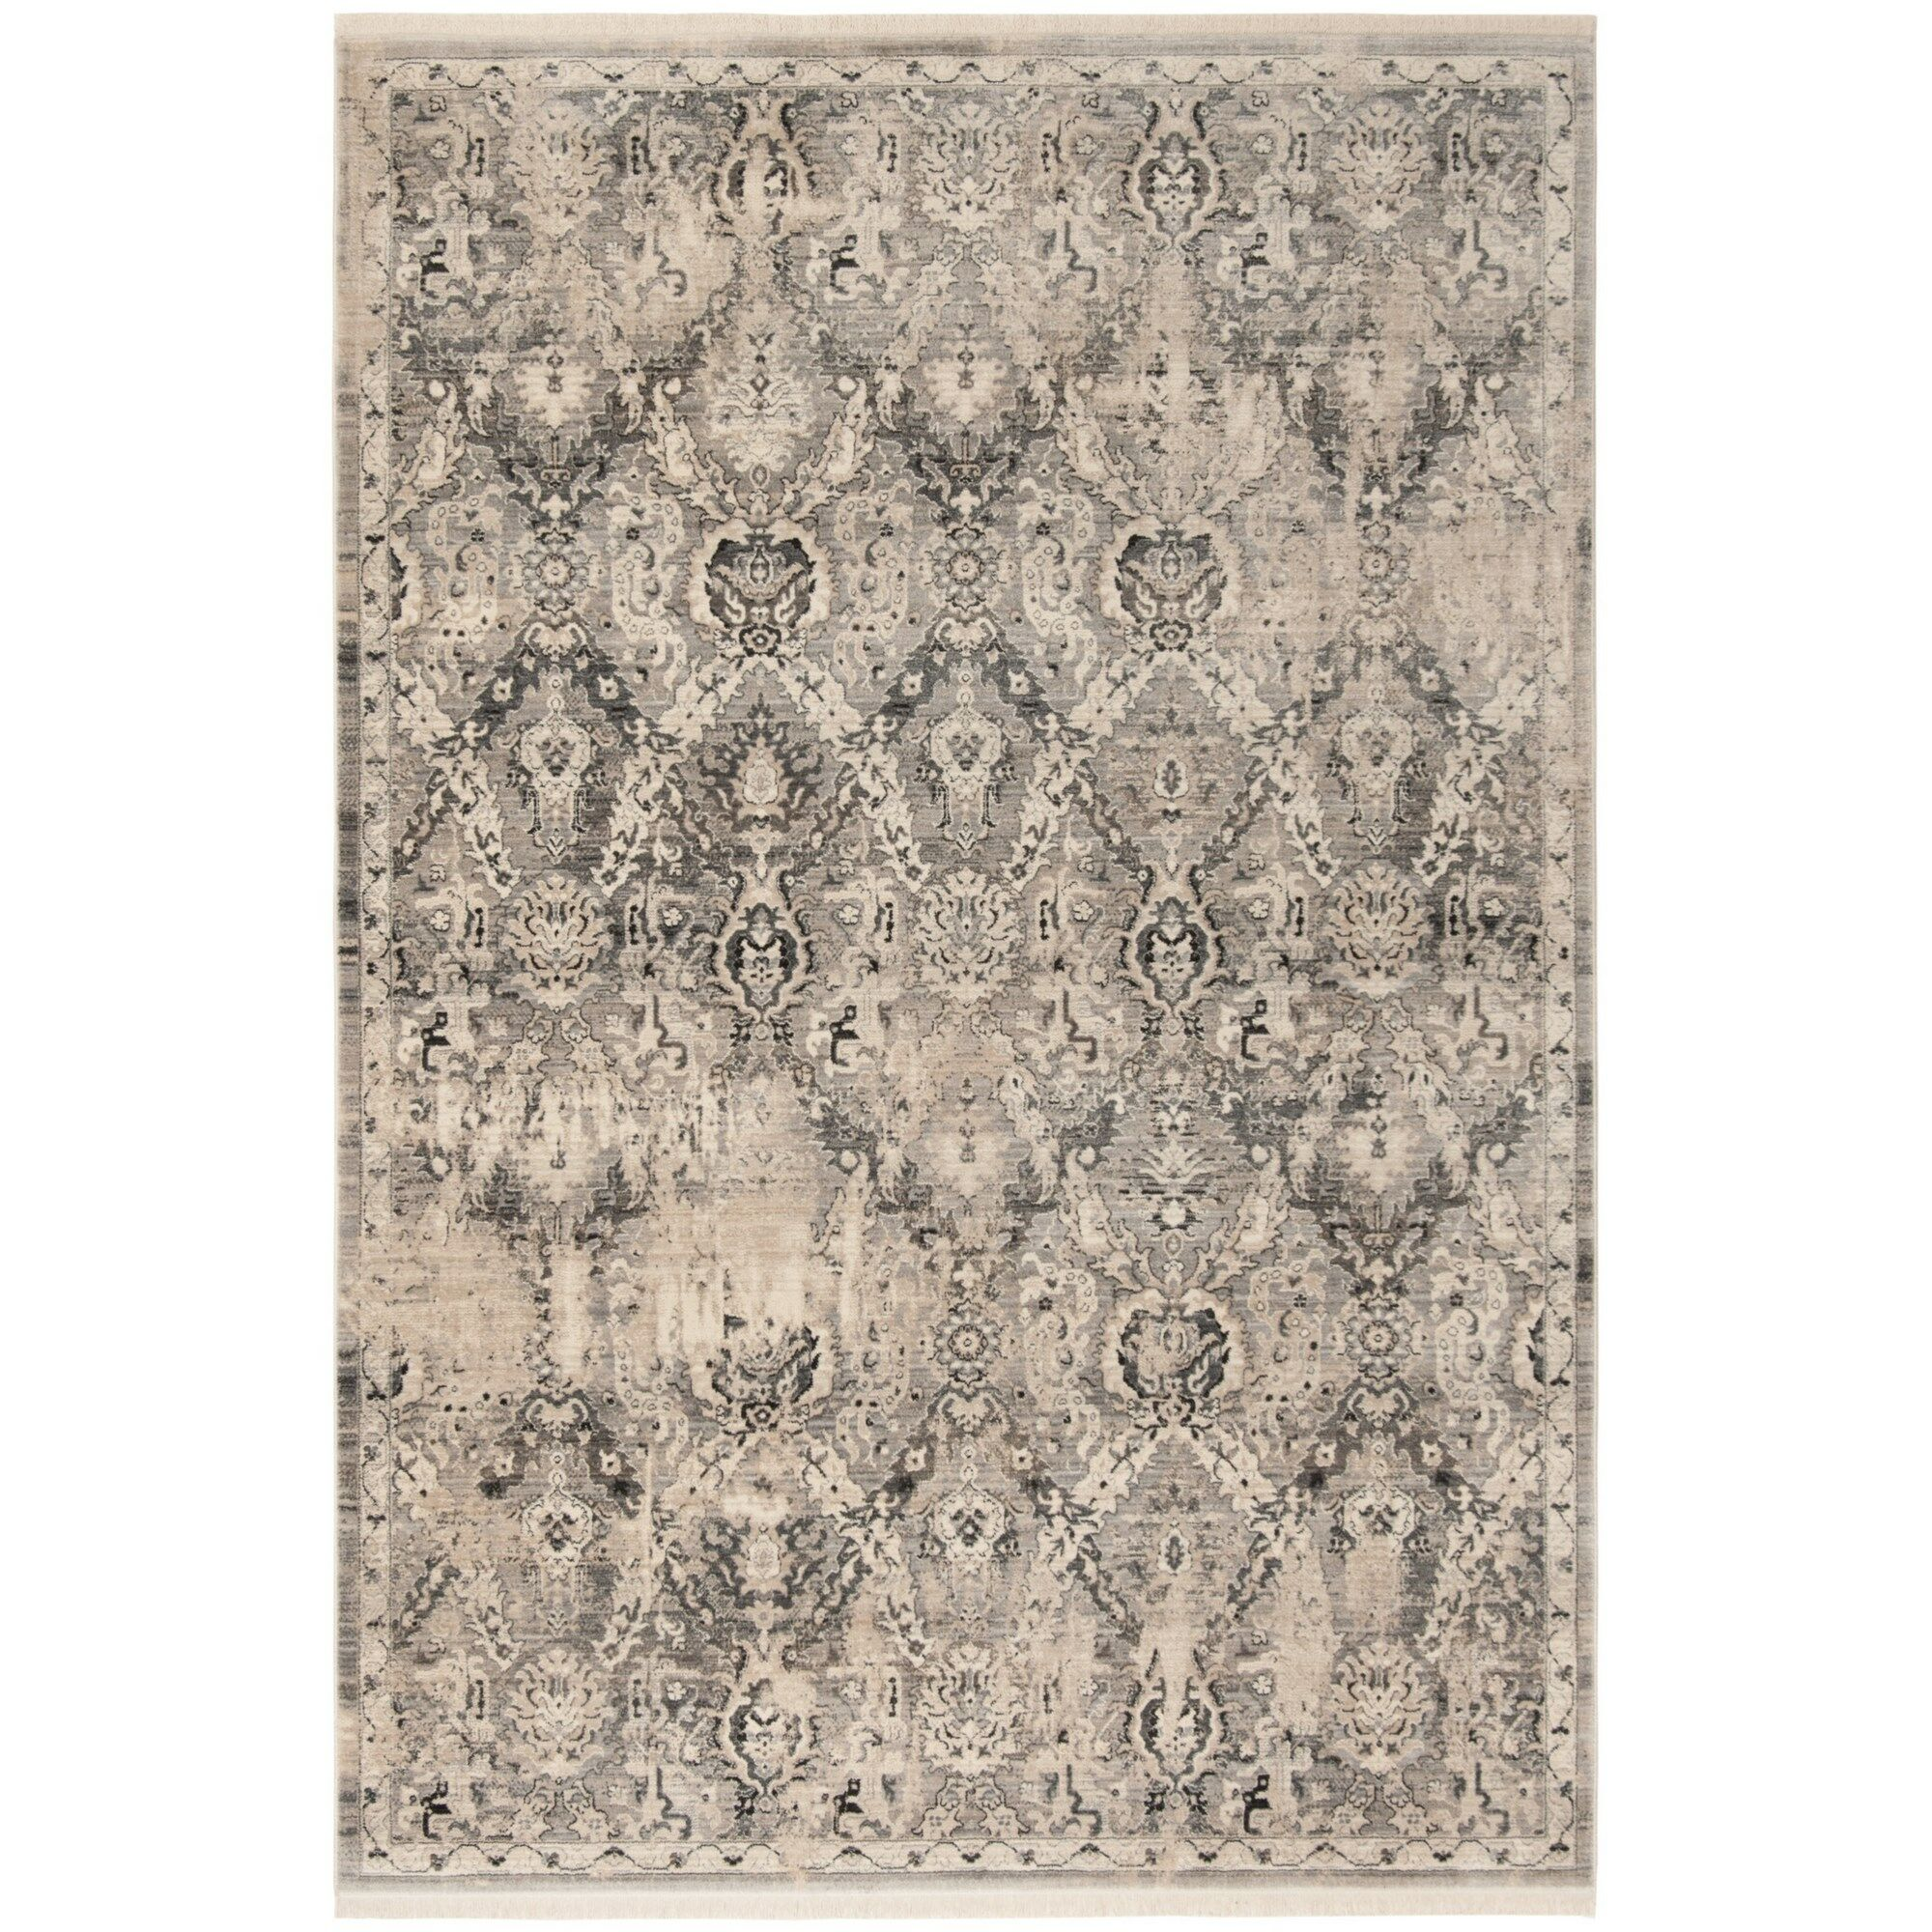 Voigt Vintage Persian Gray/Blue Area Rug Rug Size: Rectangle 8' x 10'